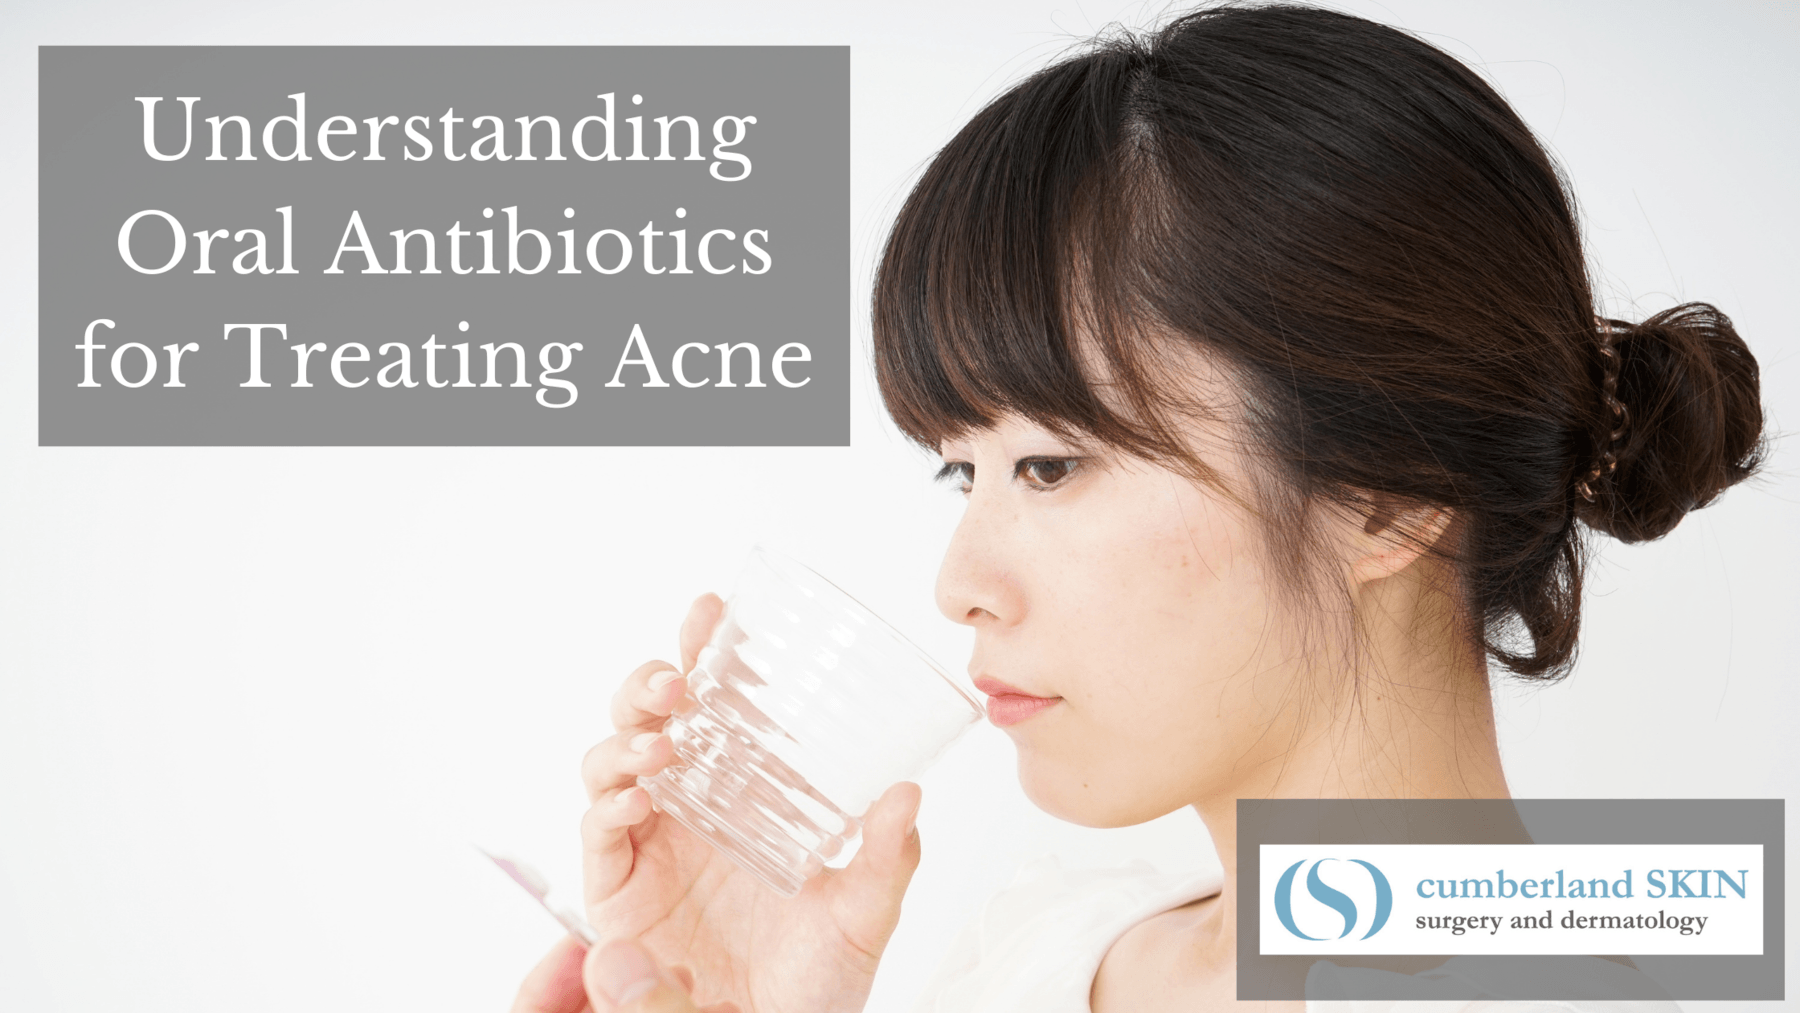 Using oral antibiotics to treat acne-prone skin